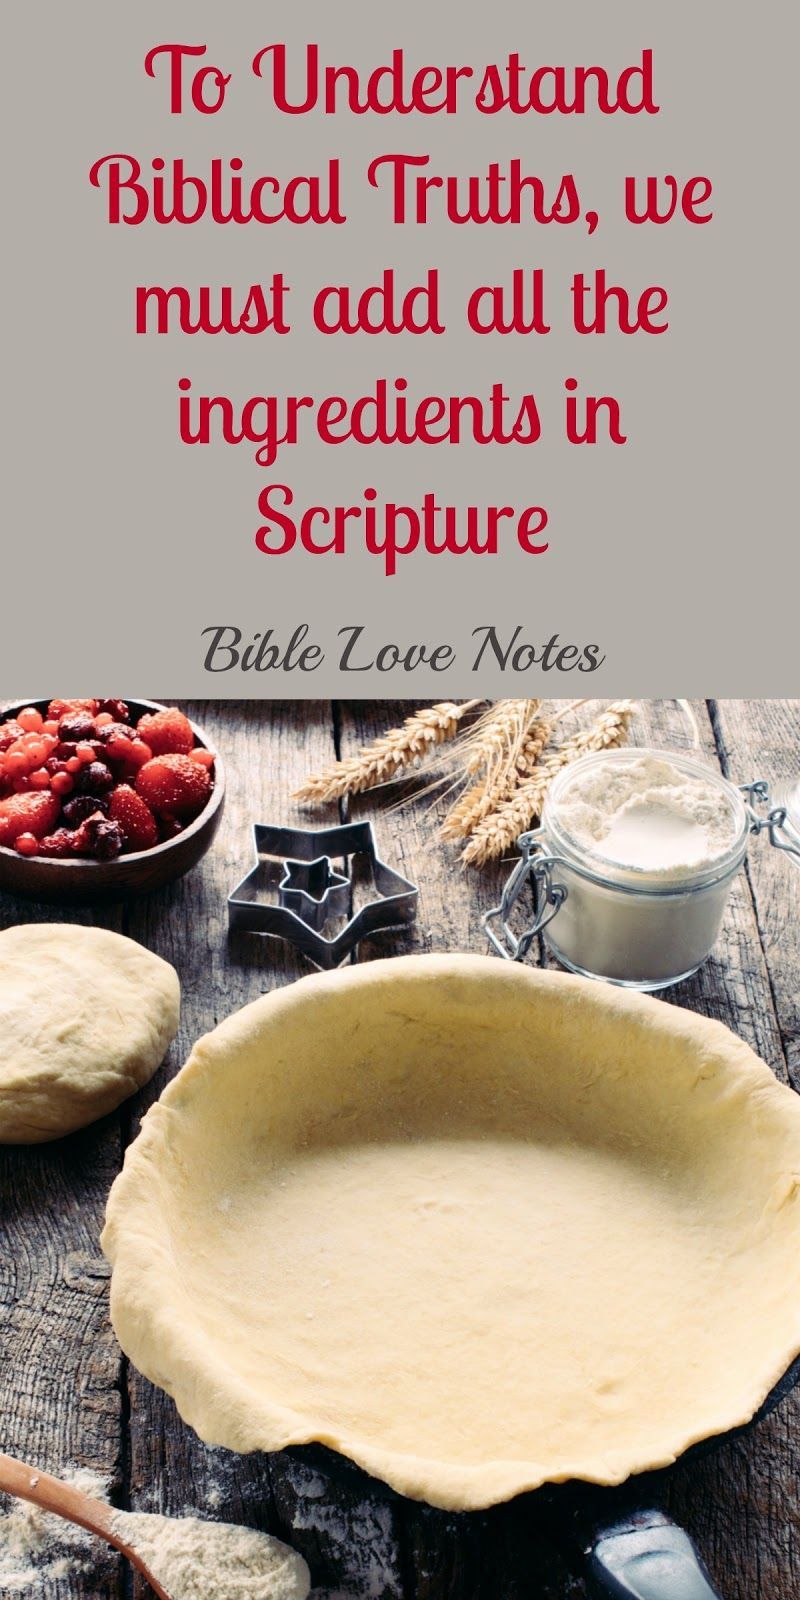 This short bible study offers 3 steps for accurately understanding passages in scripture and combining all passages to understand truth